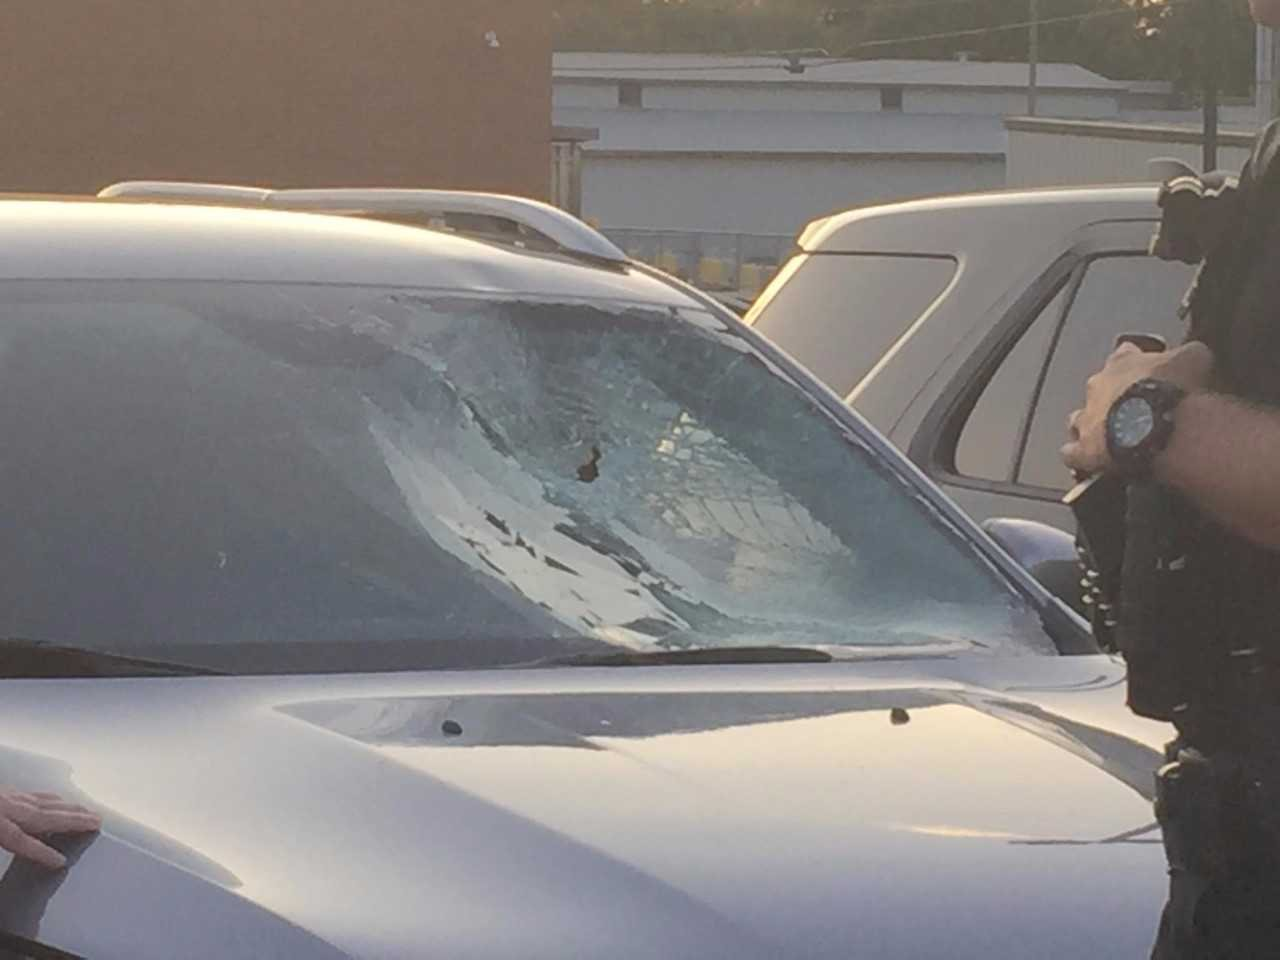 The windshield of the SUV was seriously damaged.